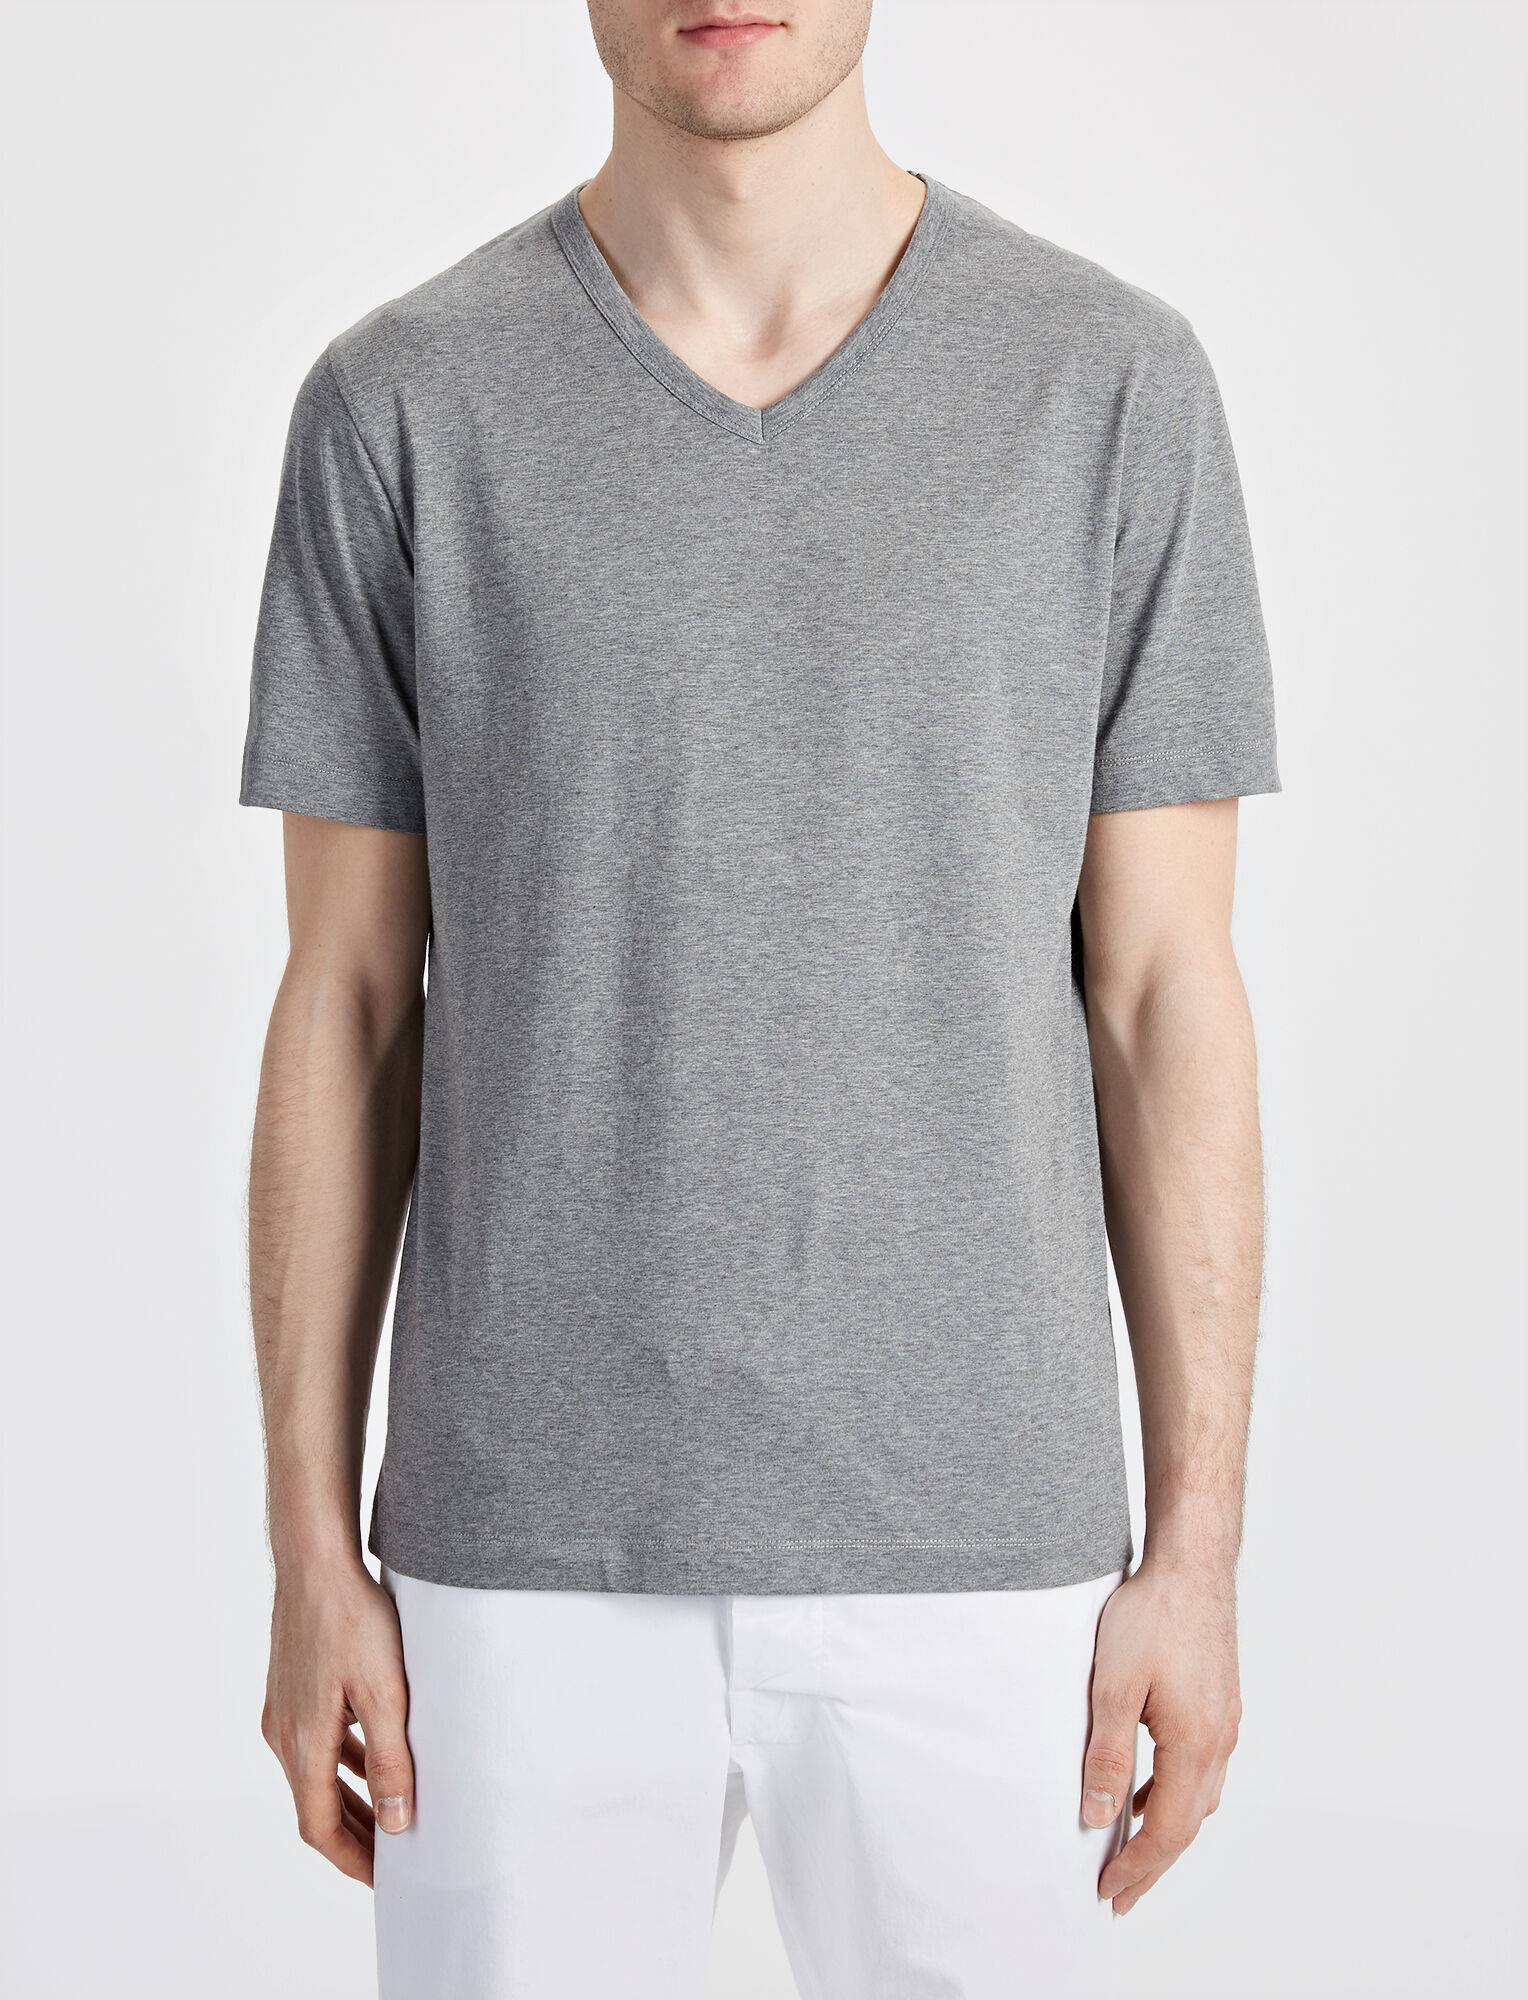 Joseph, Mercerized Jersey V Neck Tee, in GREY CHINE